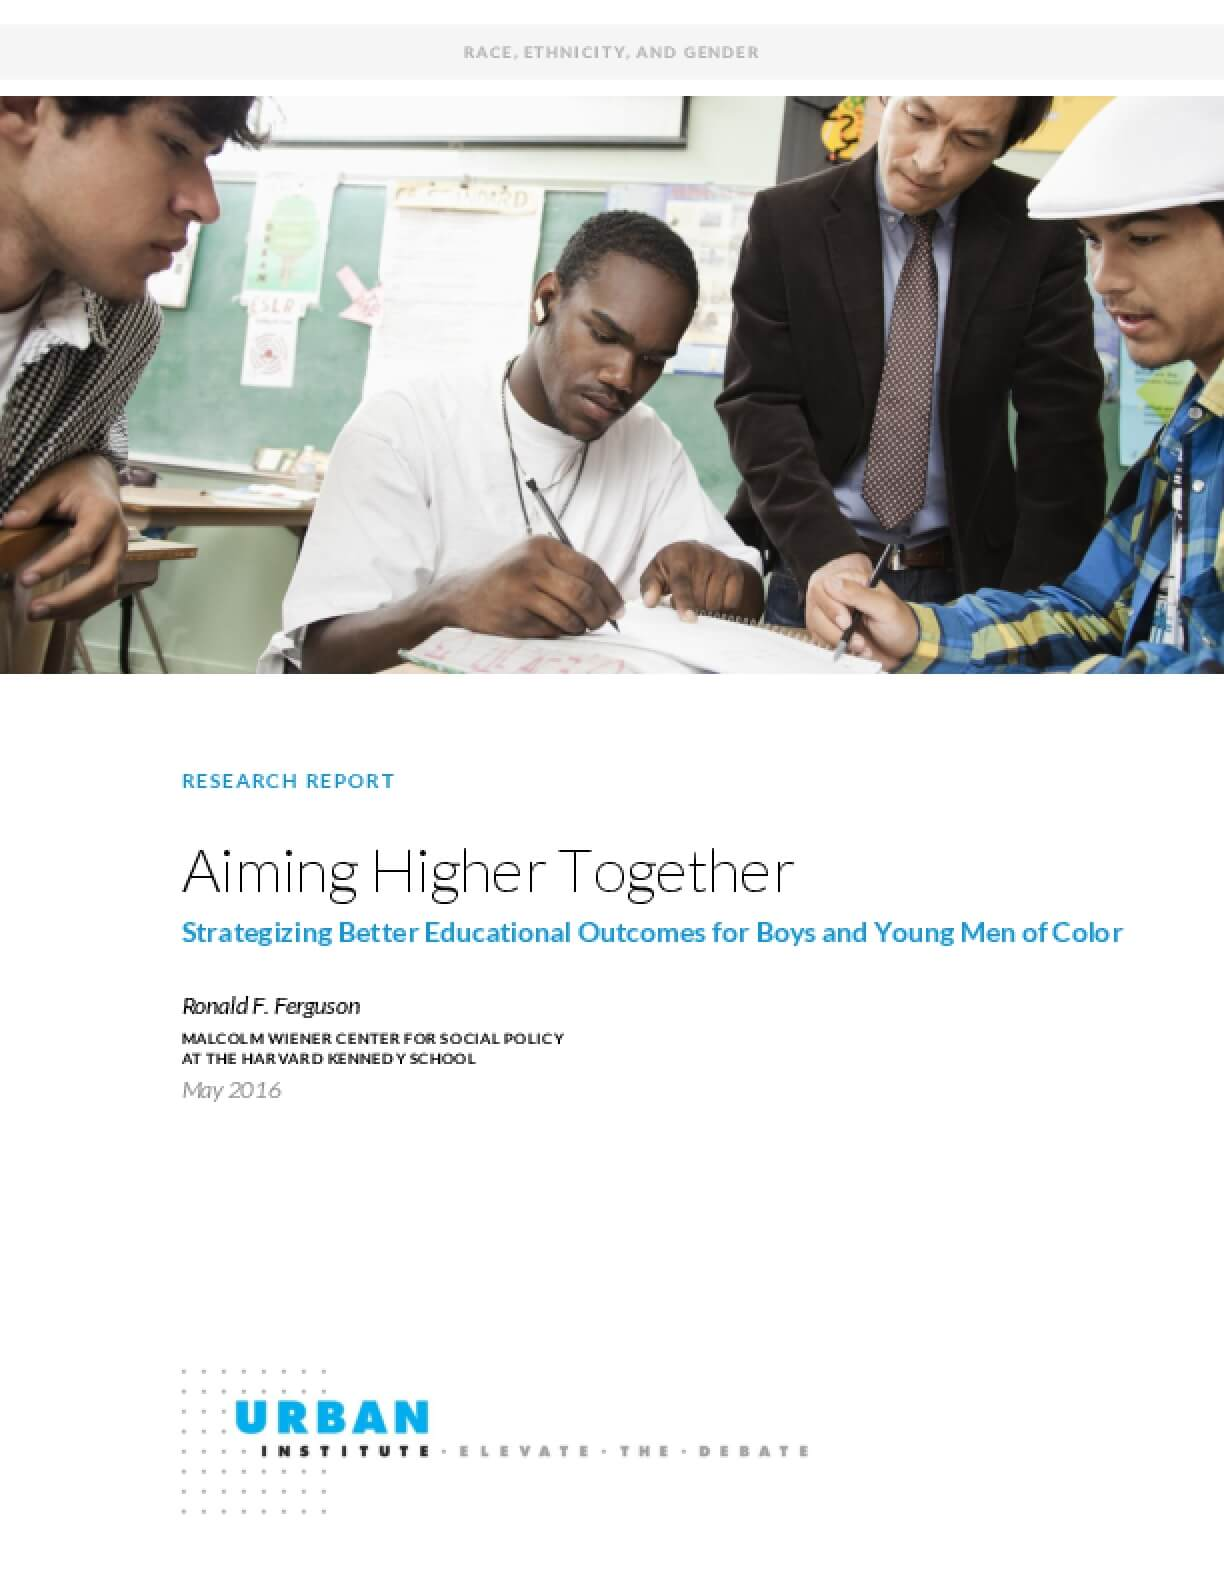 Aiming Higher Together: Strategizing Better Educational Outcomes for Boys and Young Men of Color